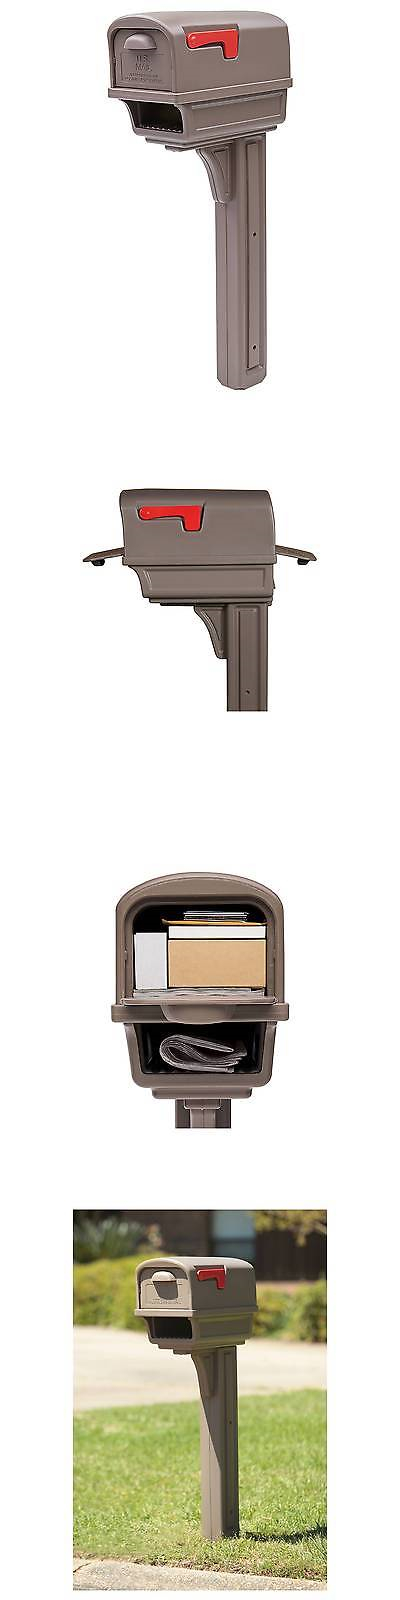 Mailboxes and Slots 20599: Gibraltar Gentry All-In-One Plastic Mailbox And Post Combo - Mocha -> BUY IT NOW ONLY: $74.99 on eBay!